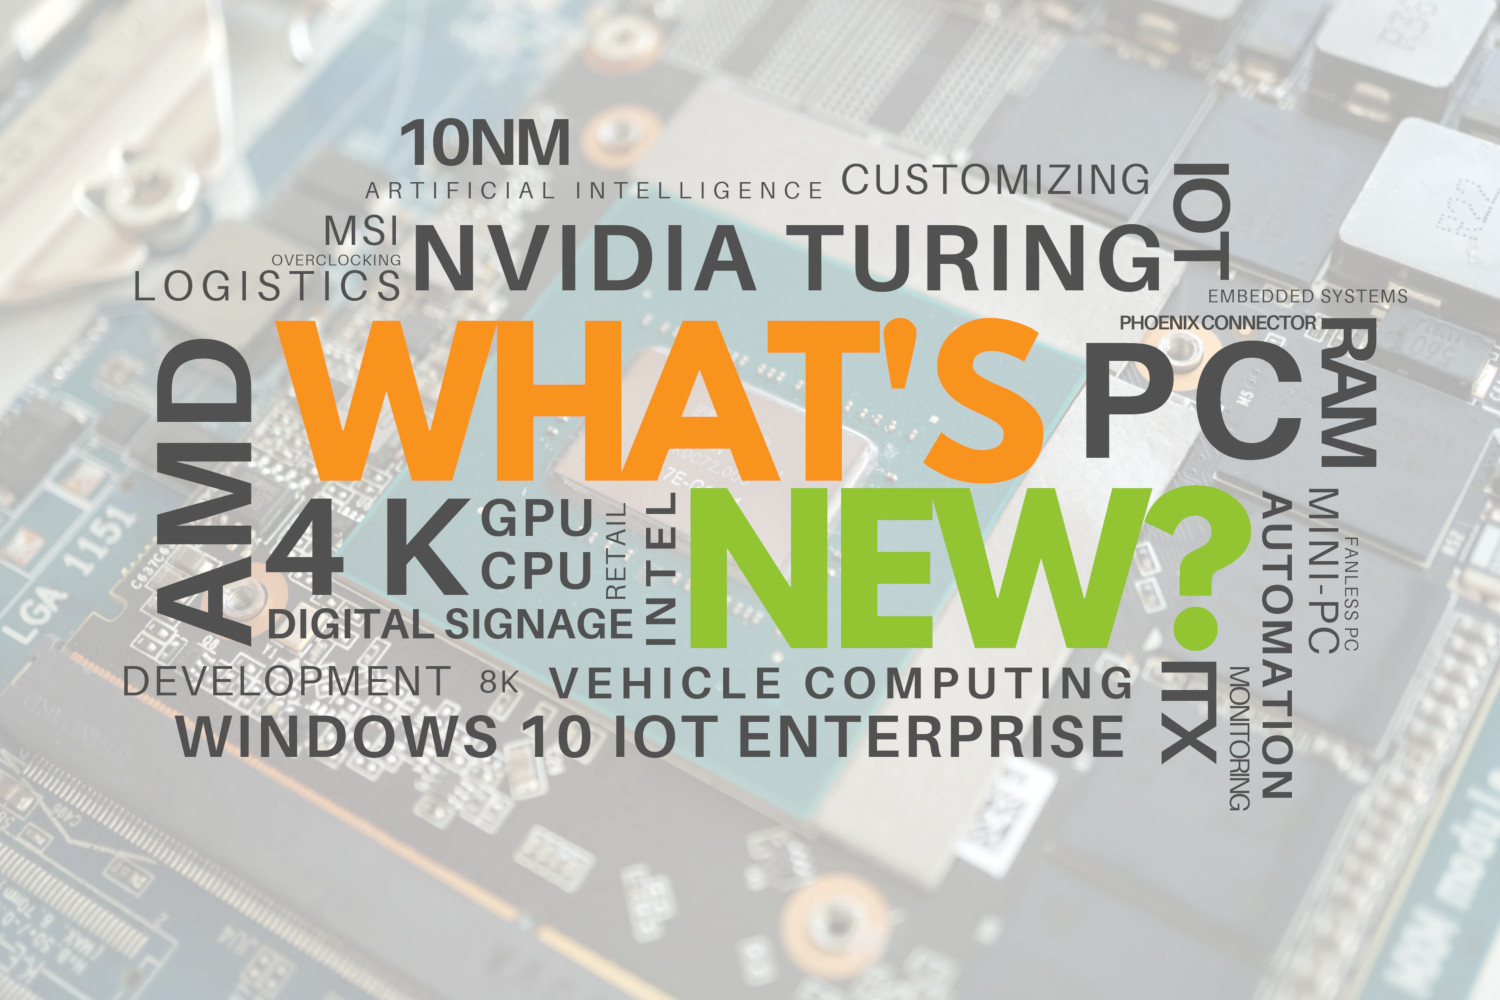 What's new? Intel's 10nm chips, AMD's success and Nvidia Turing